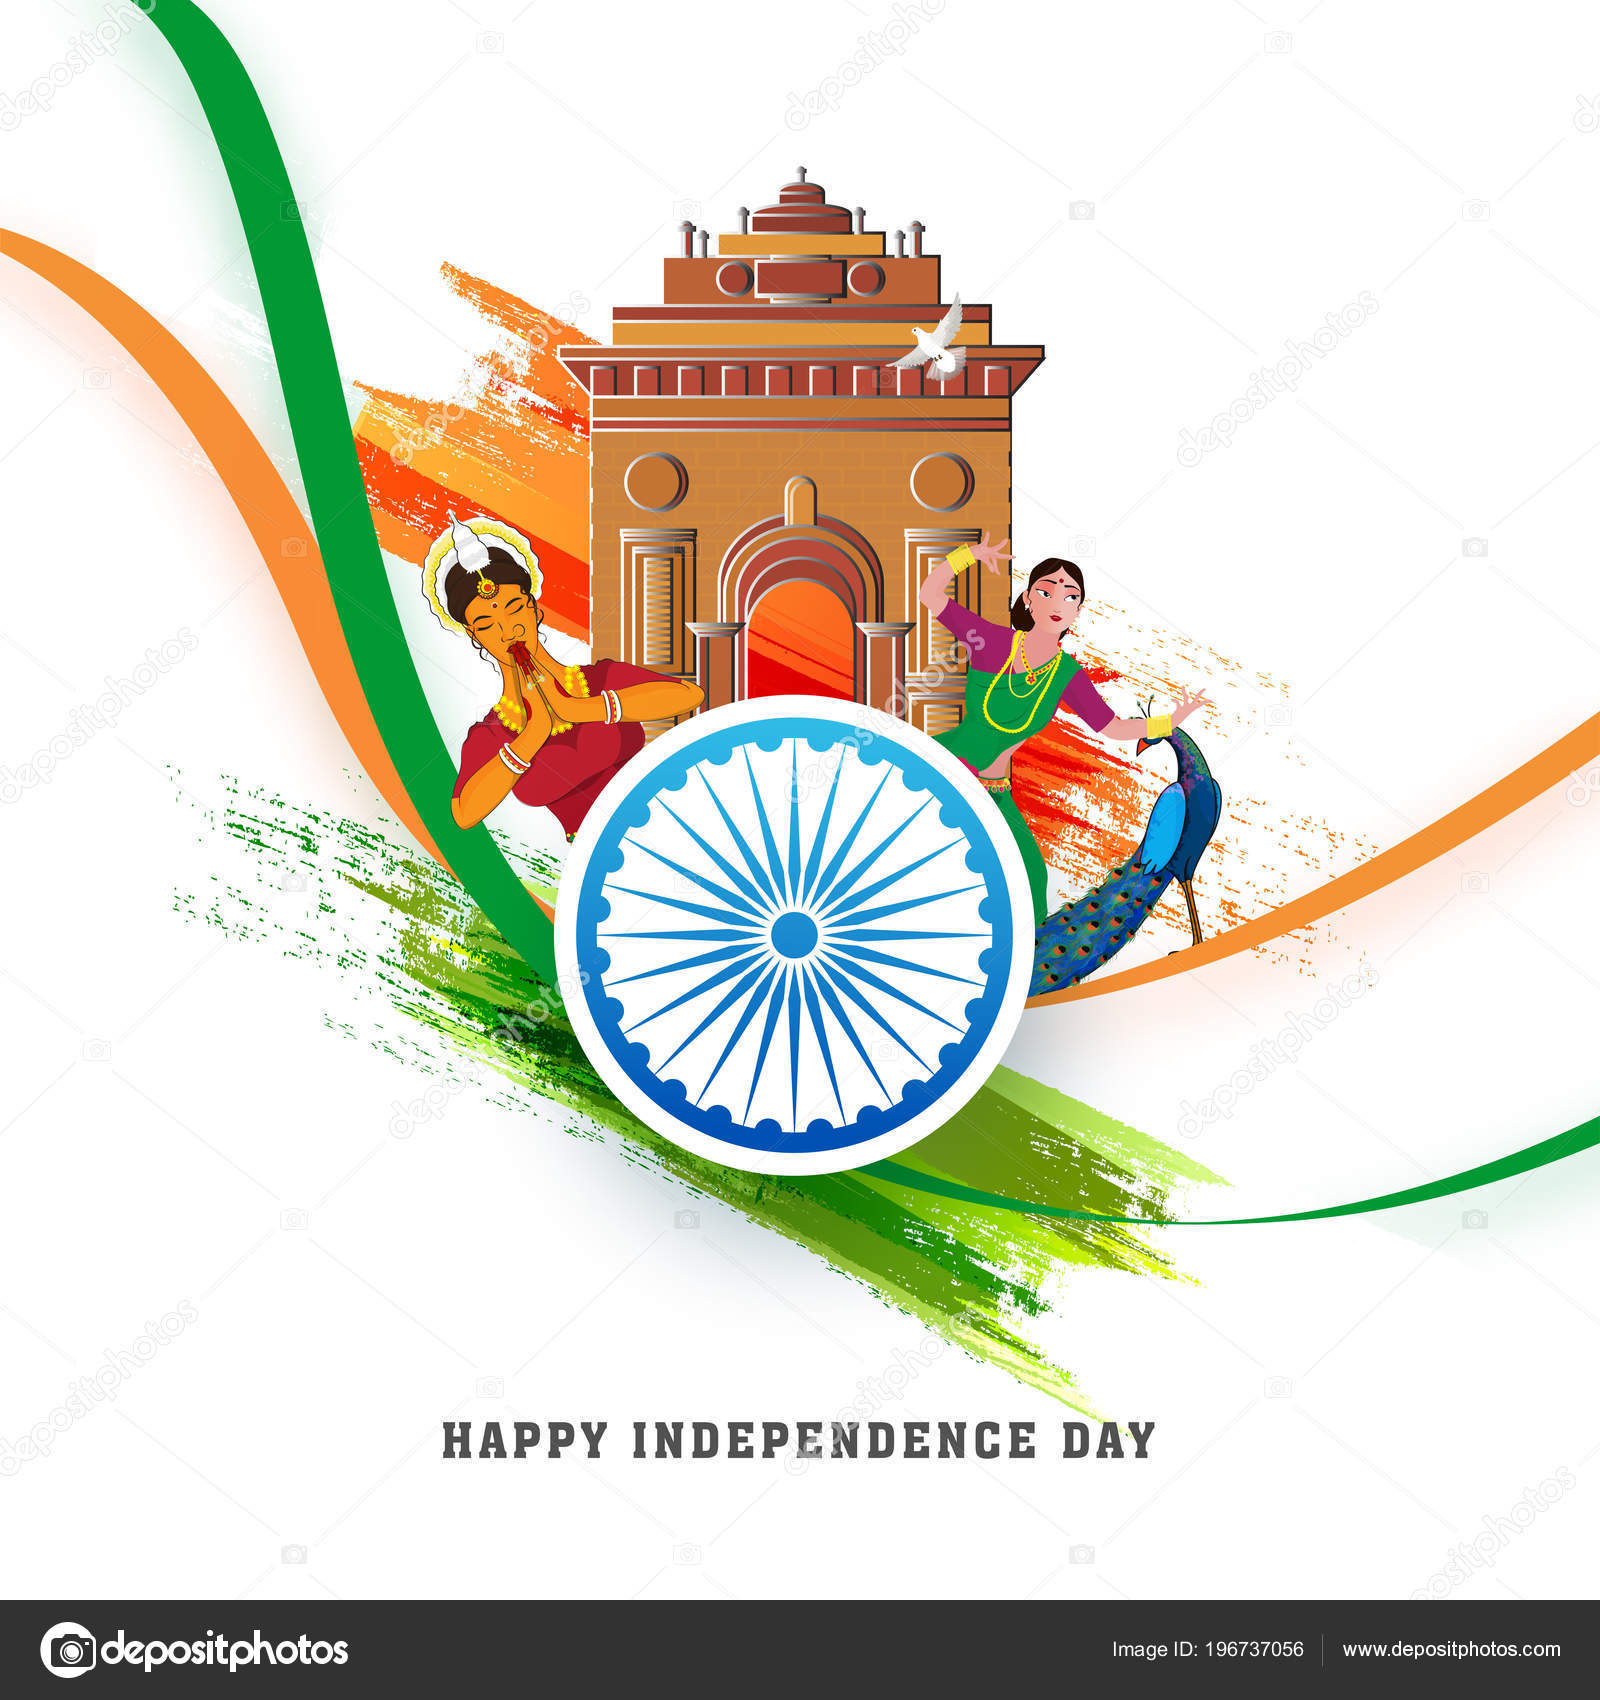 Indian Independence Day Celebration Concept Women Tradional